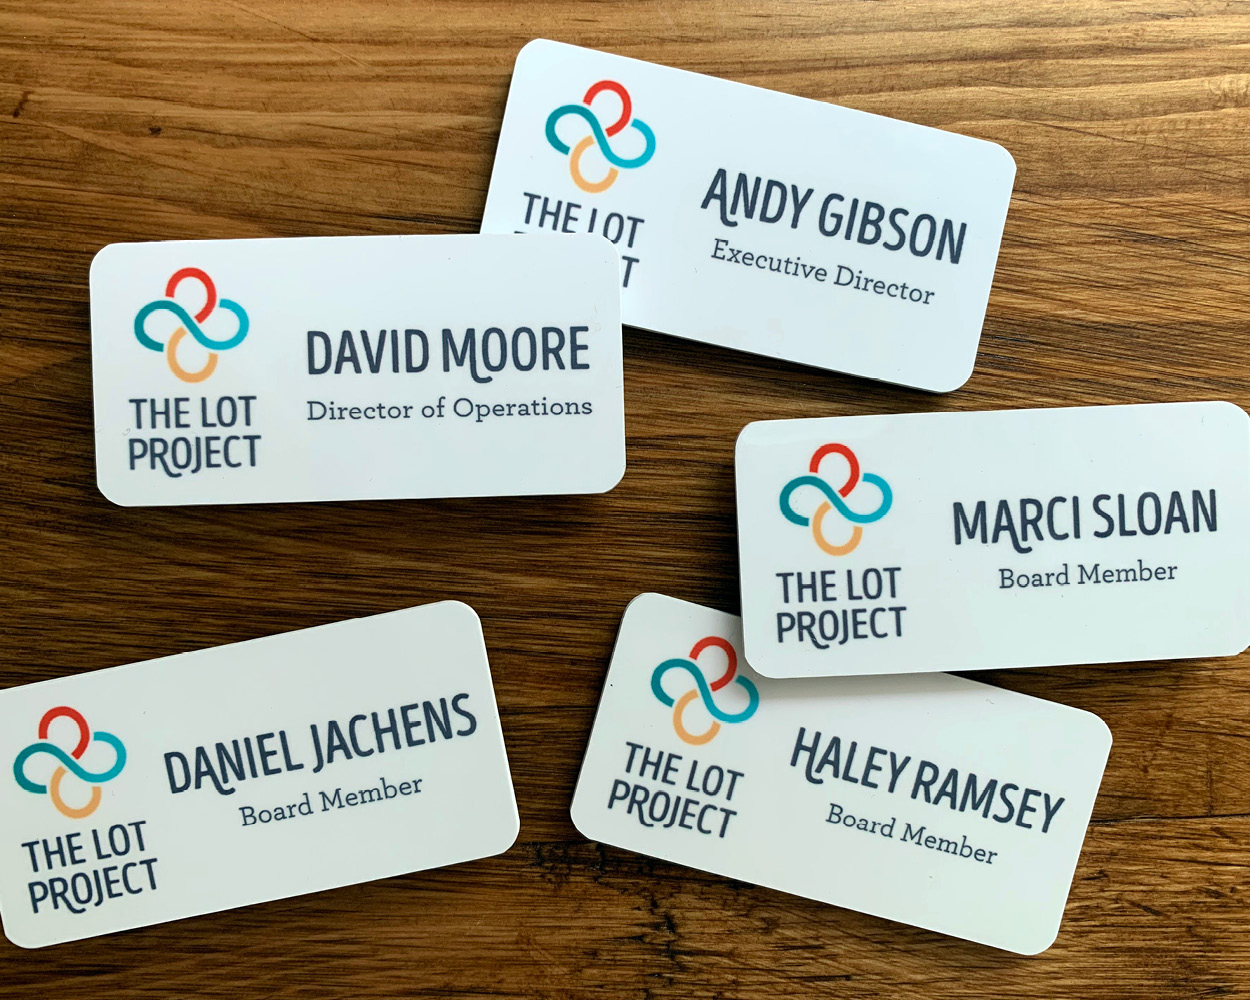 Lot Project Name Tags